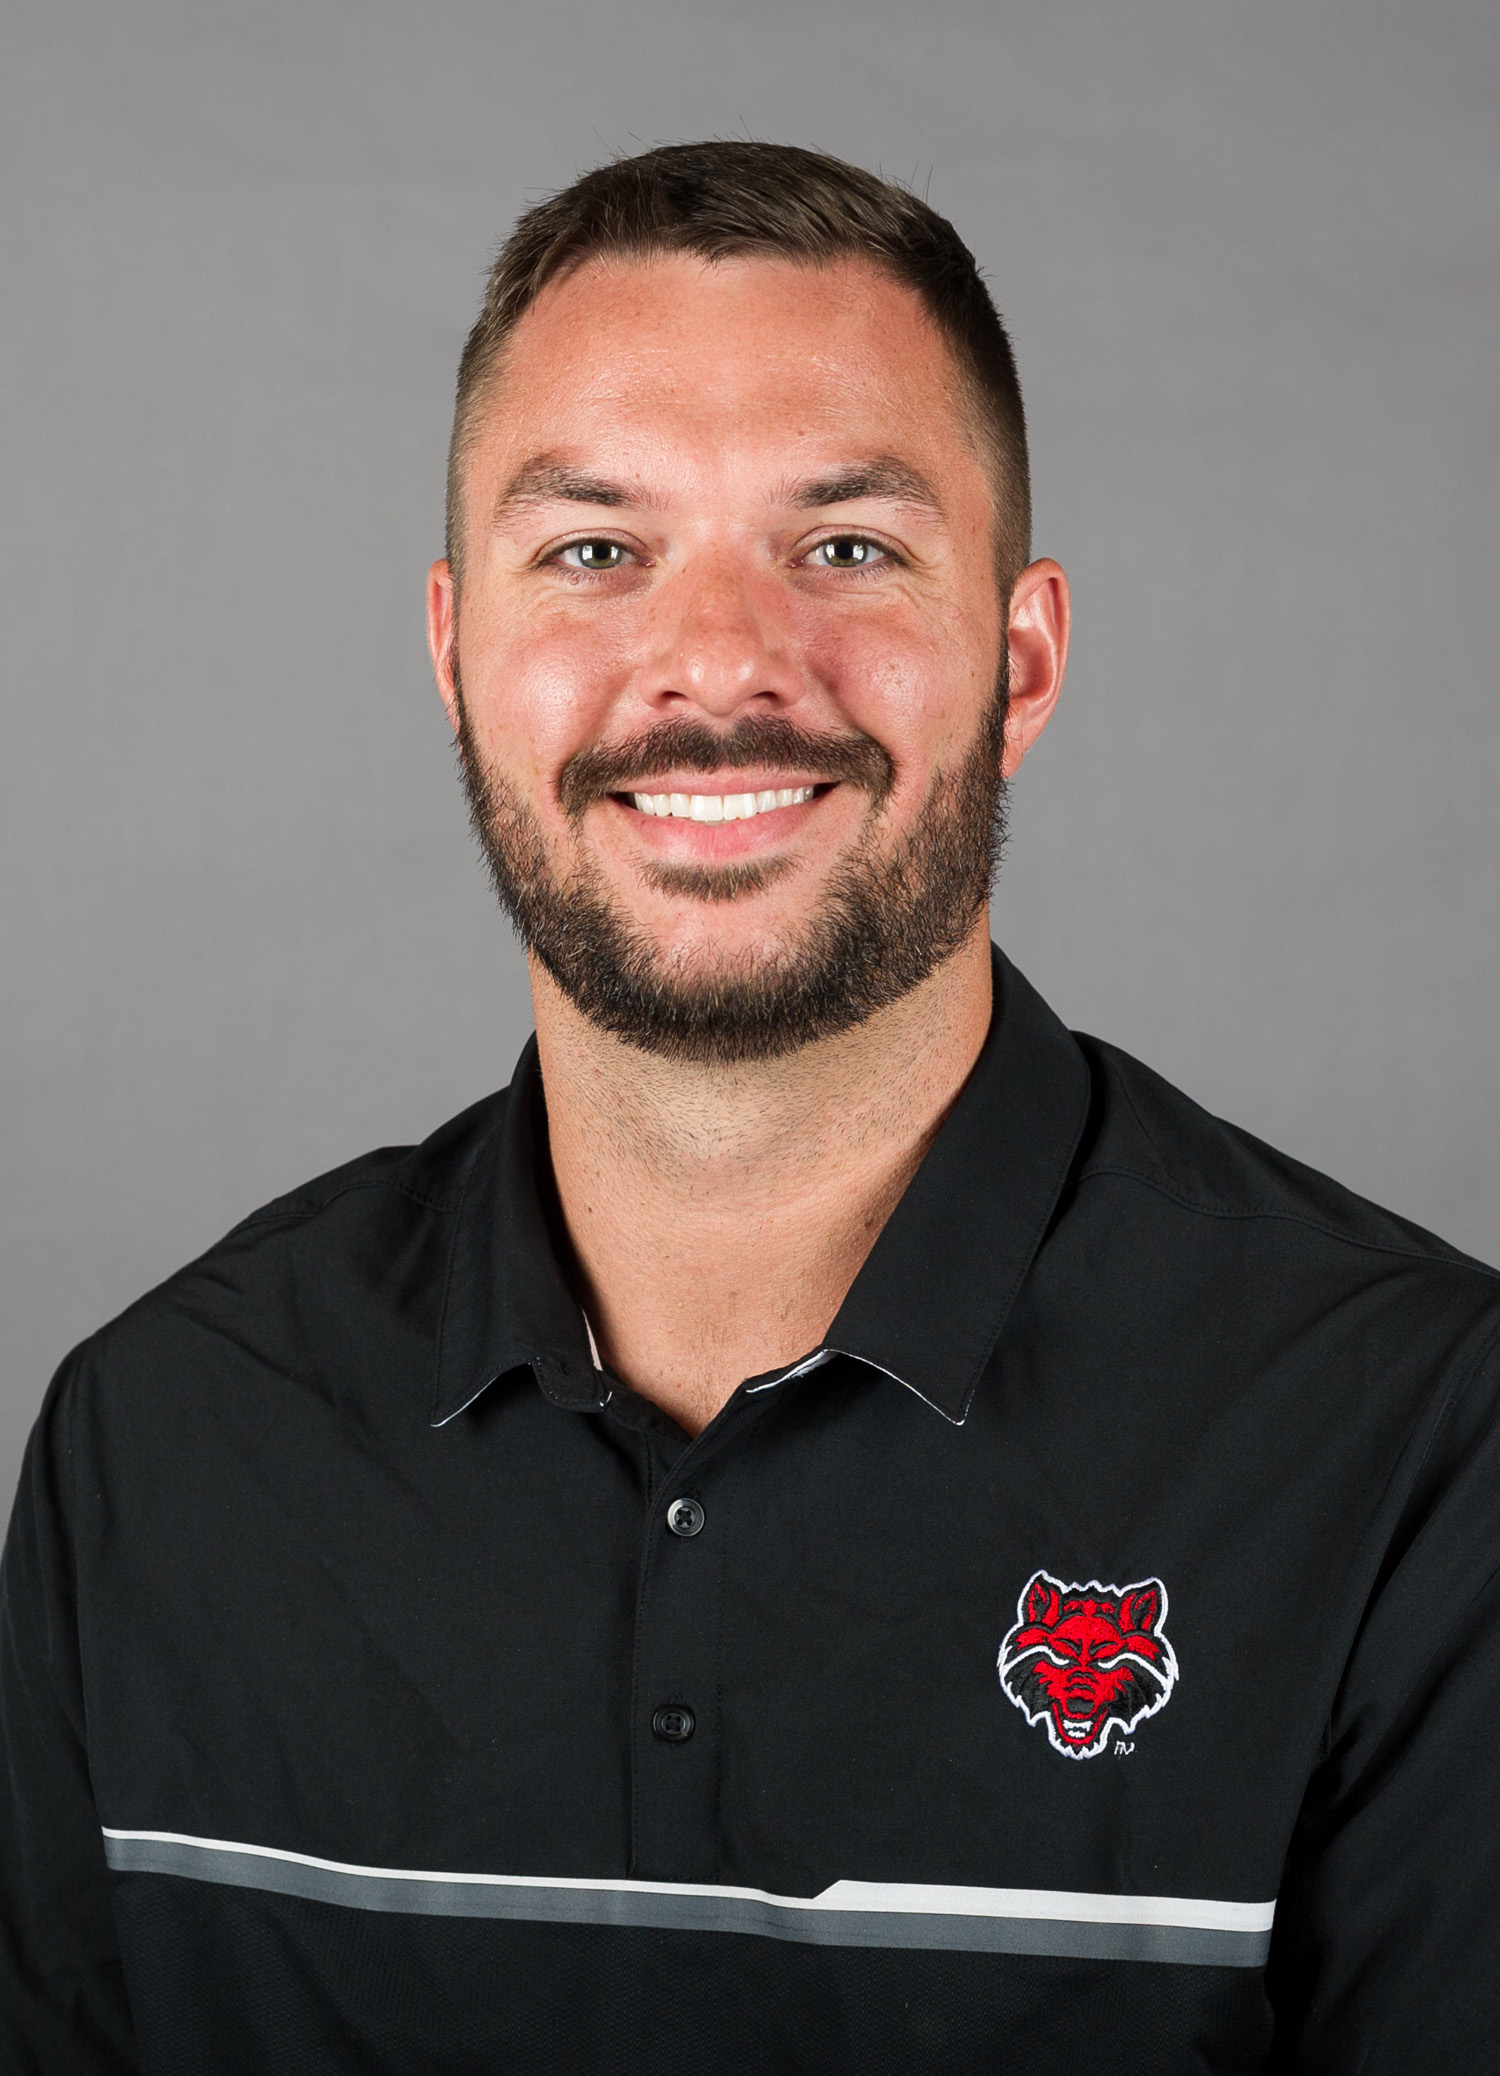 Head Rugby Coach Blake White